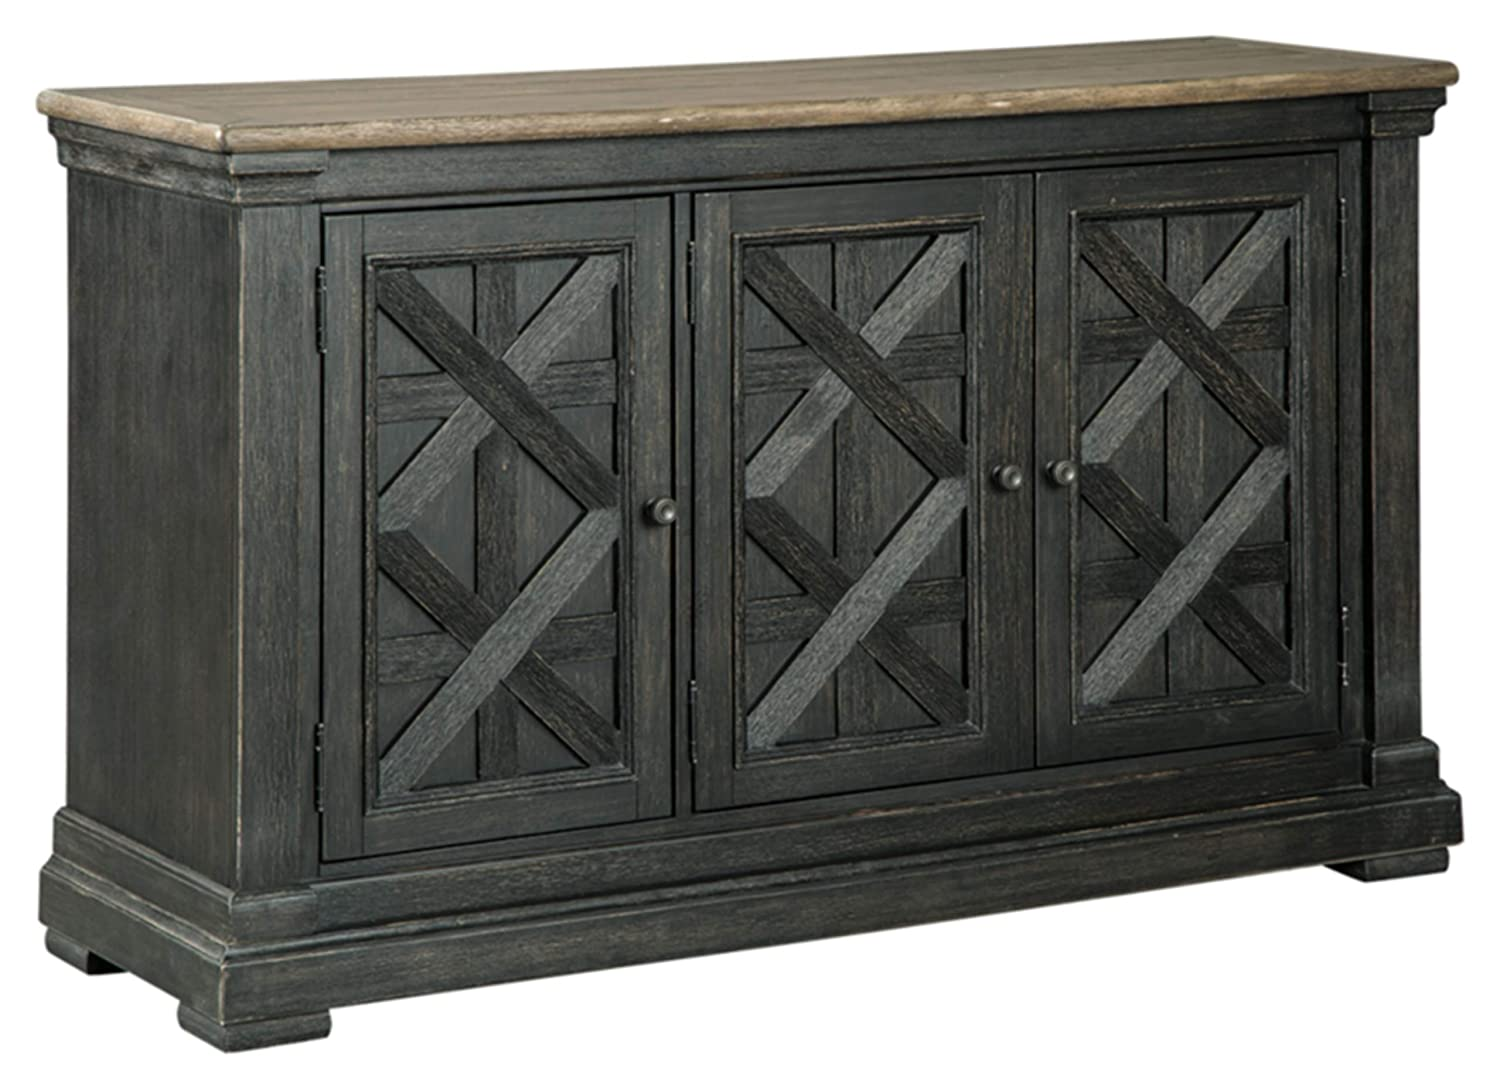 Ashley Furniture Signature Design - Tyler Creek Dining Room Server - Black/Gray